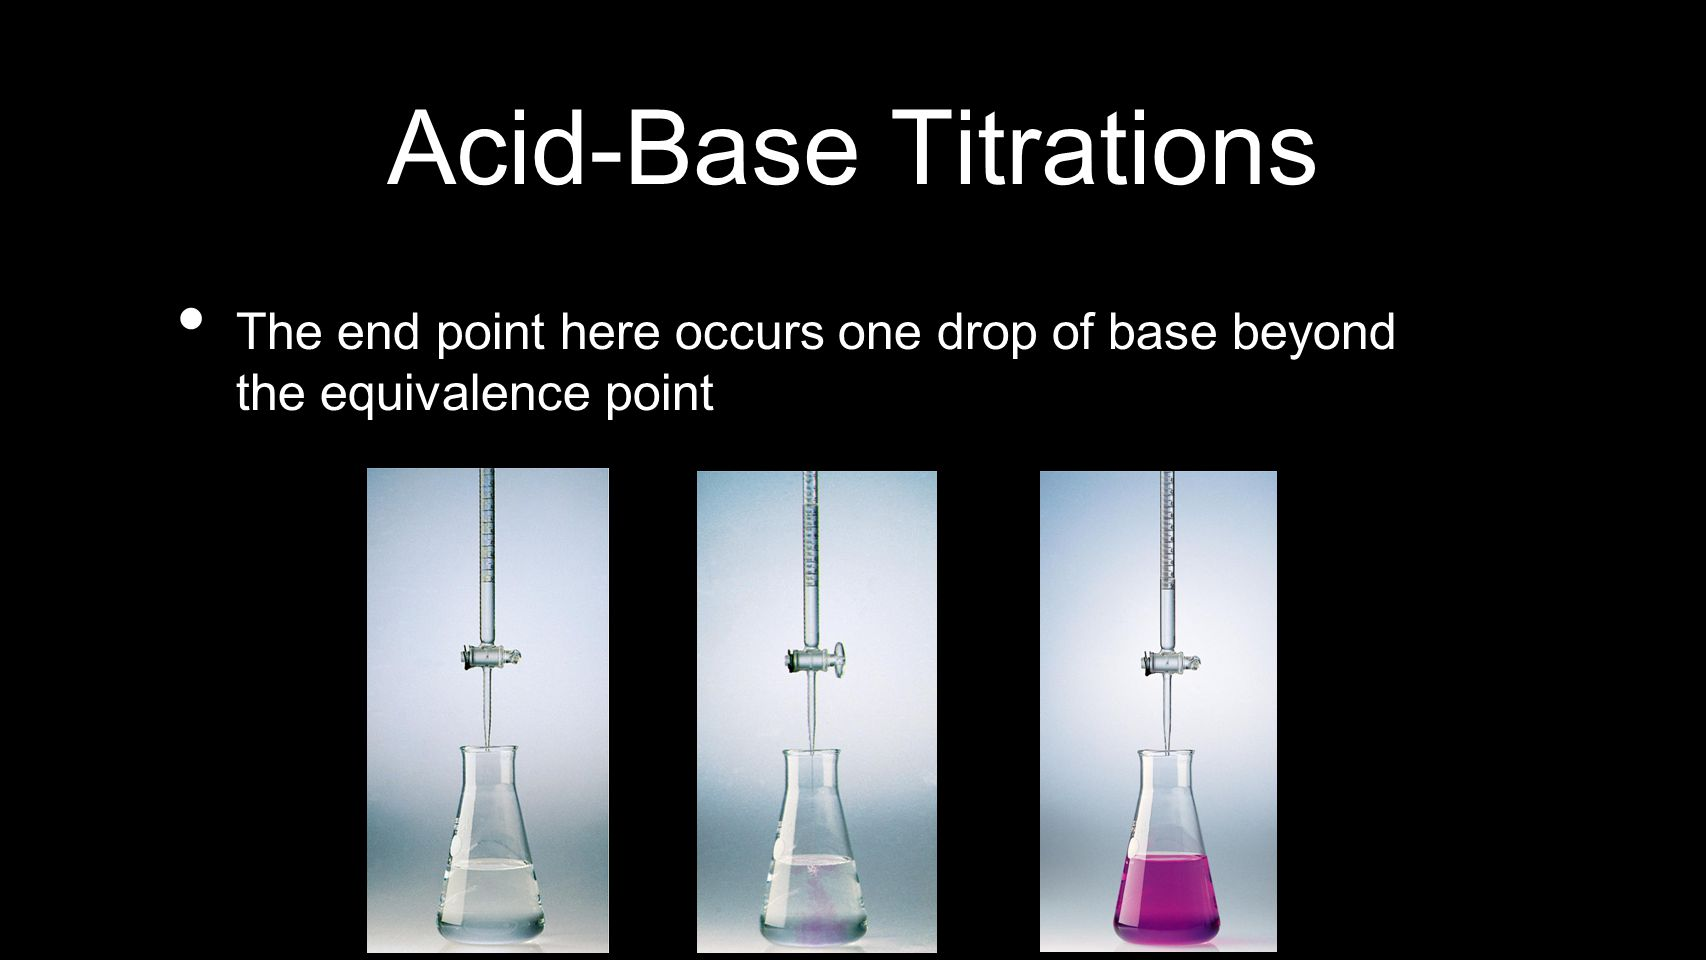 Acid-Base Titrations The end point here occurs one drop of base beyond the equivalence point